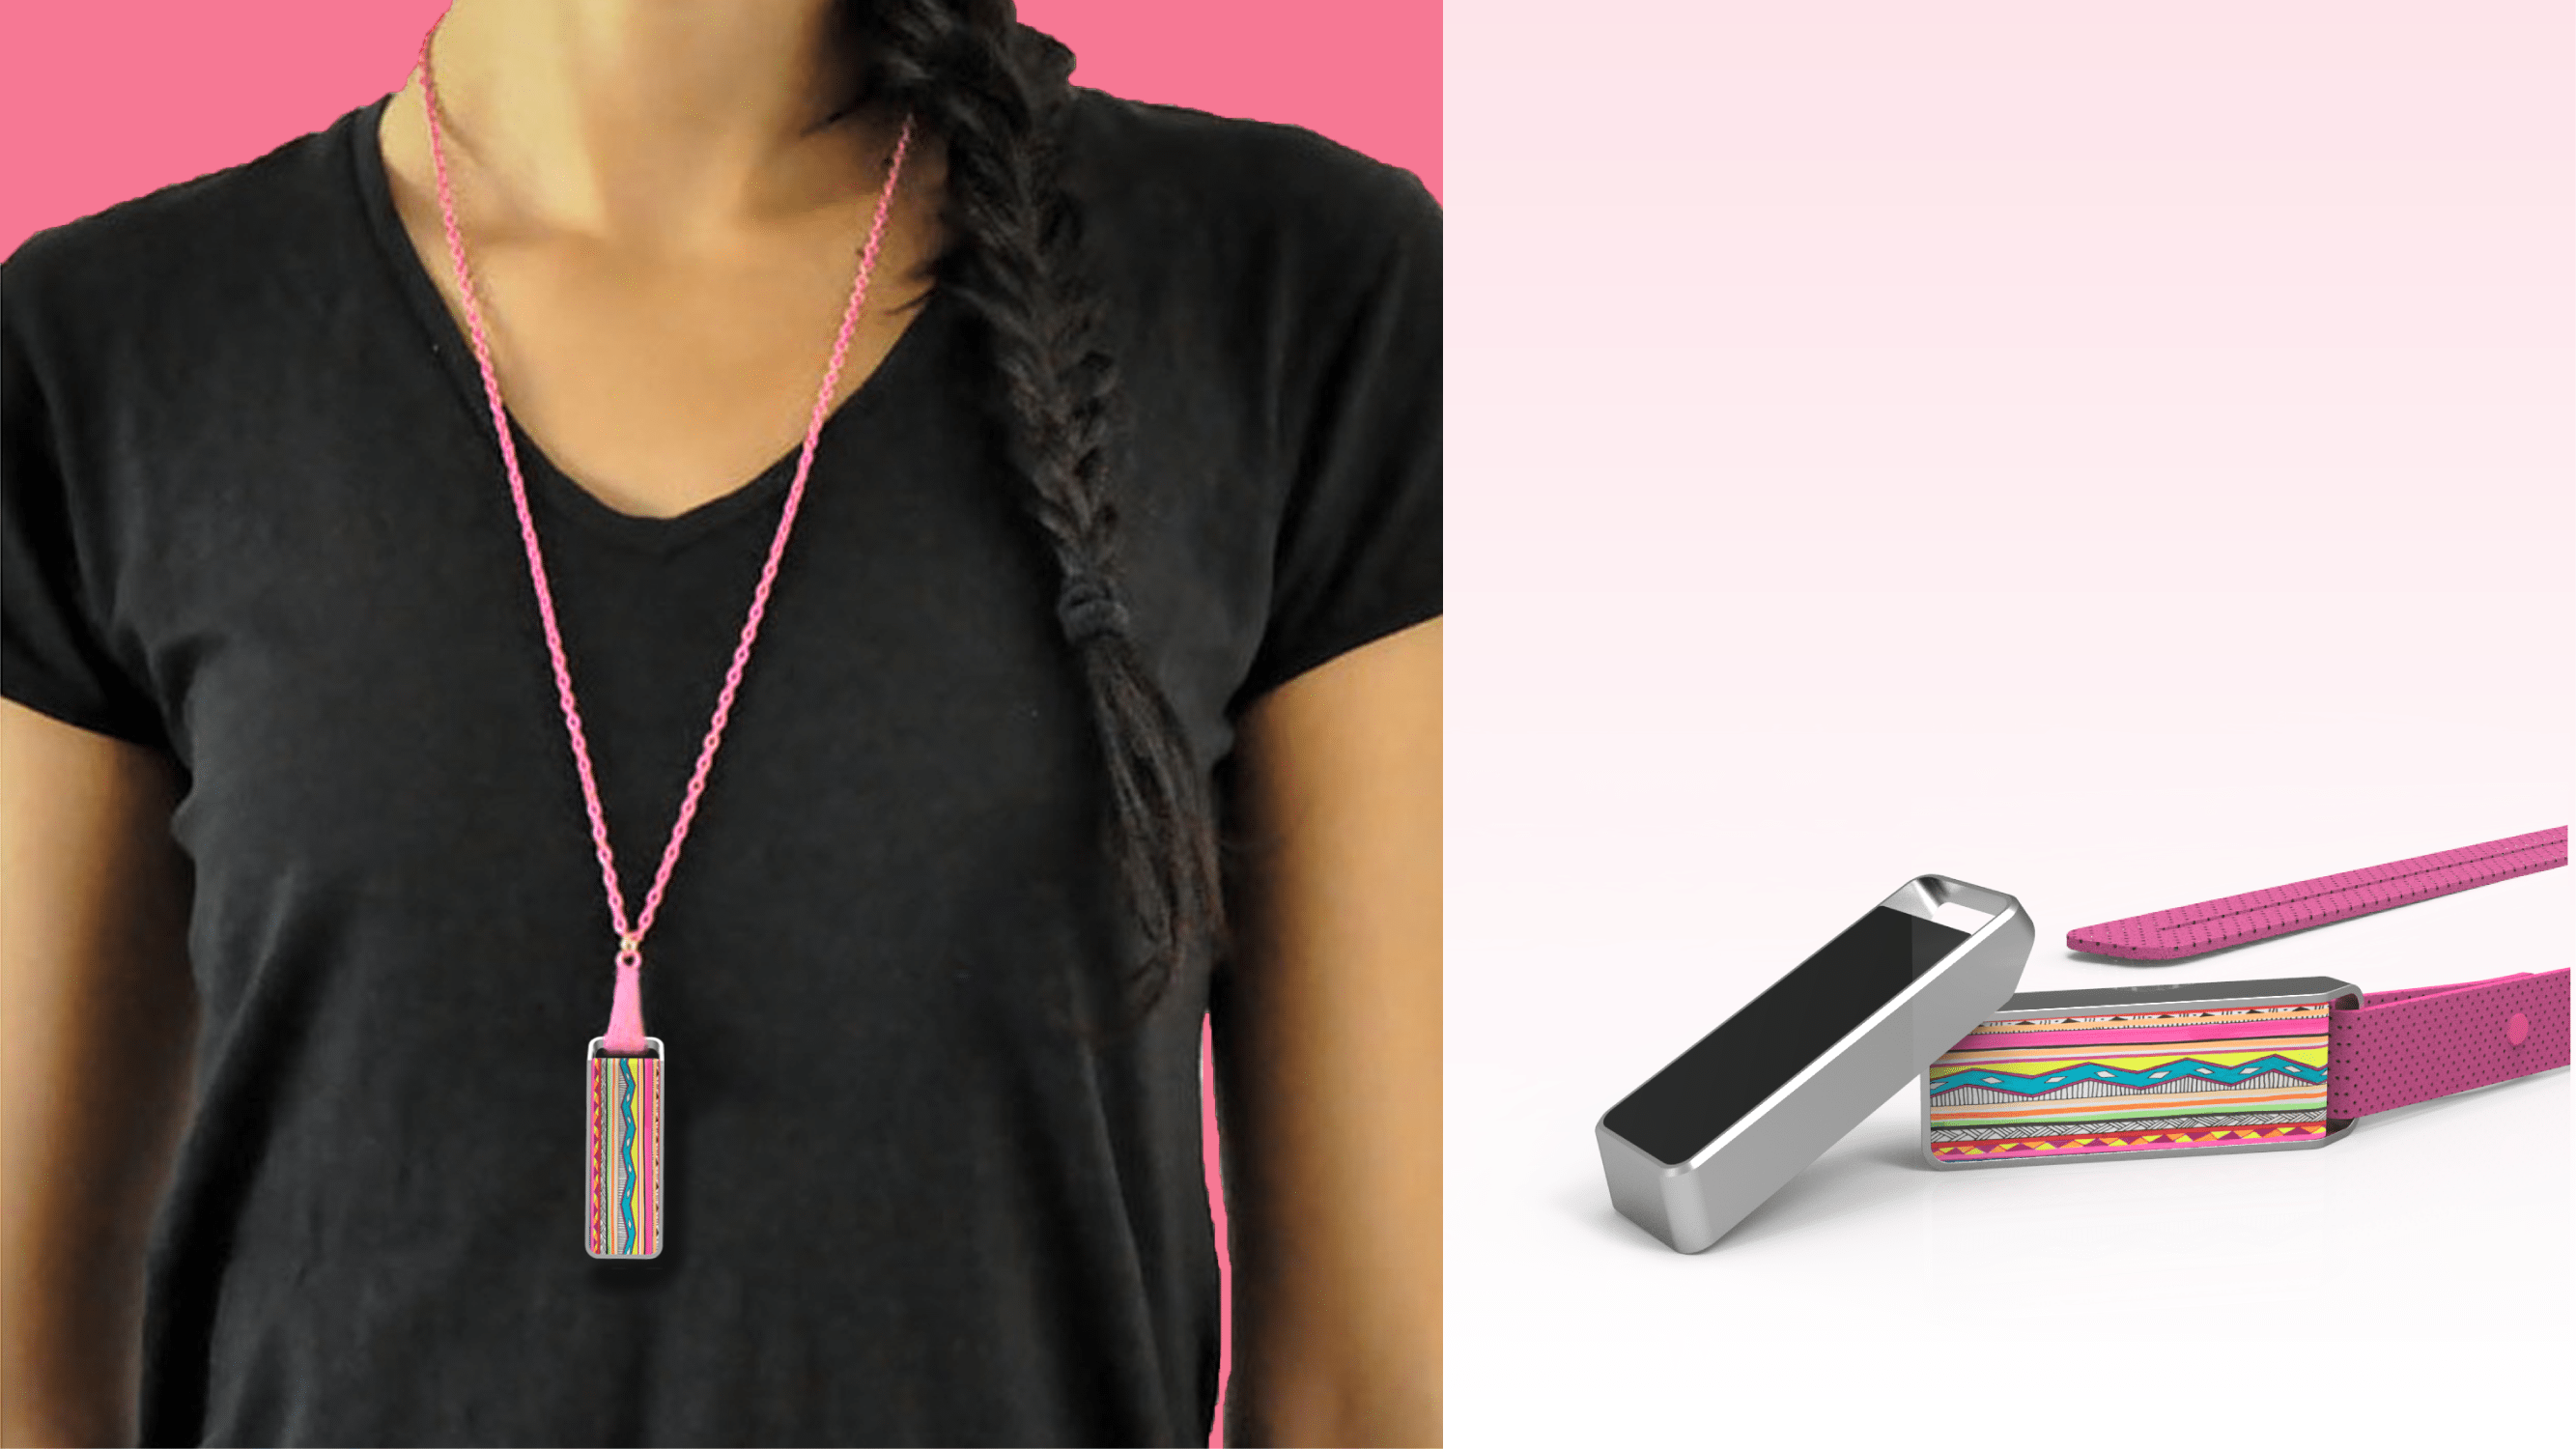 sony-smart-pod-necklace